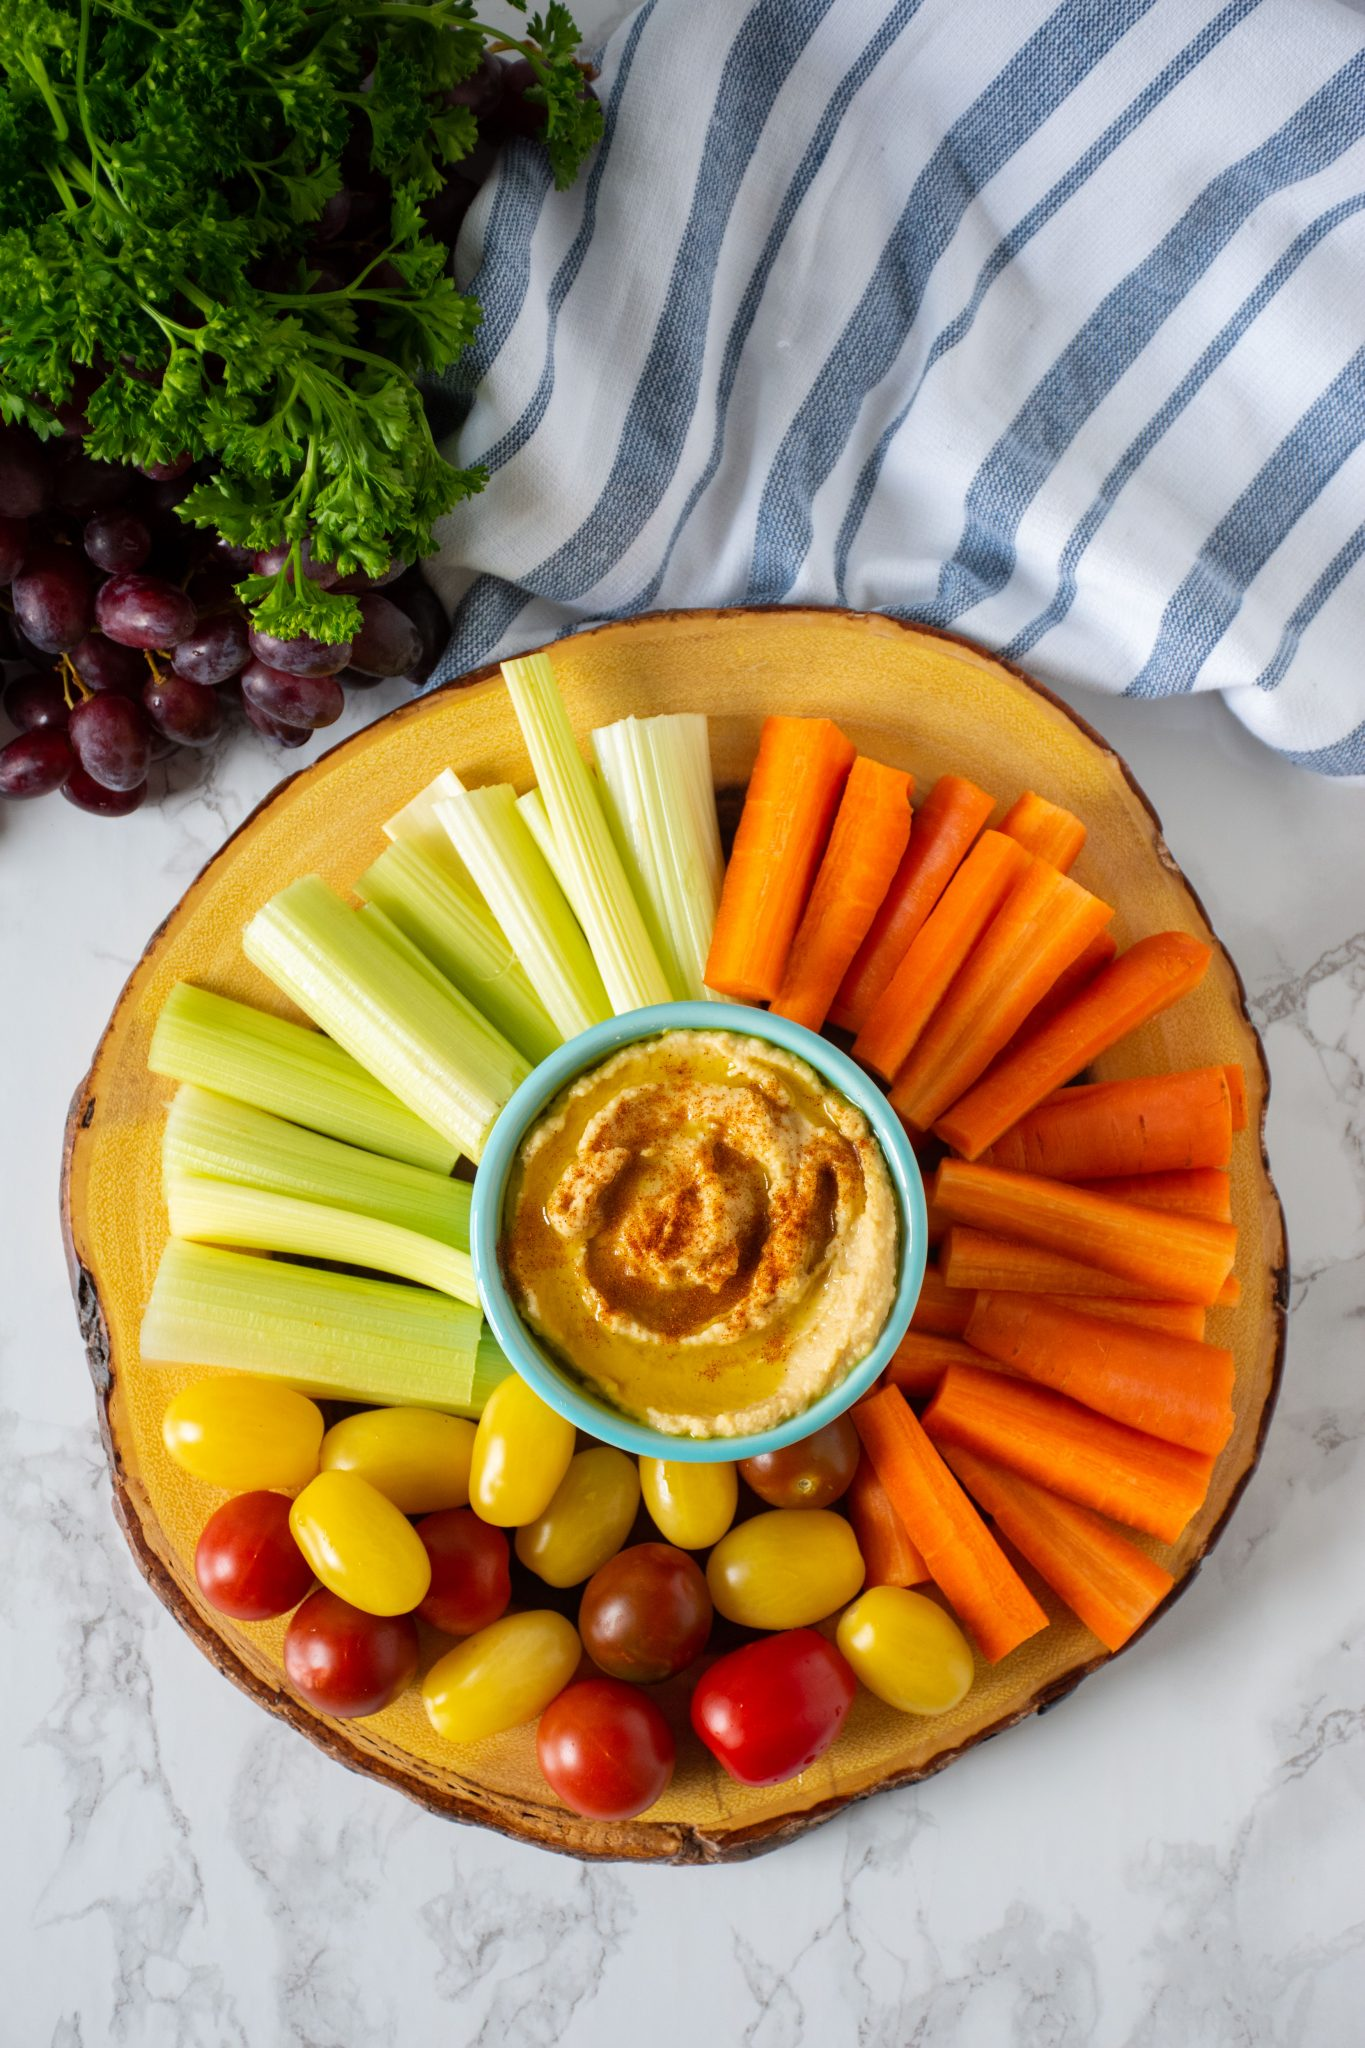 Overhead shot of vegetable platter with a bowl of pantry basics hummus.